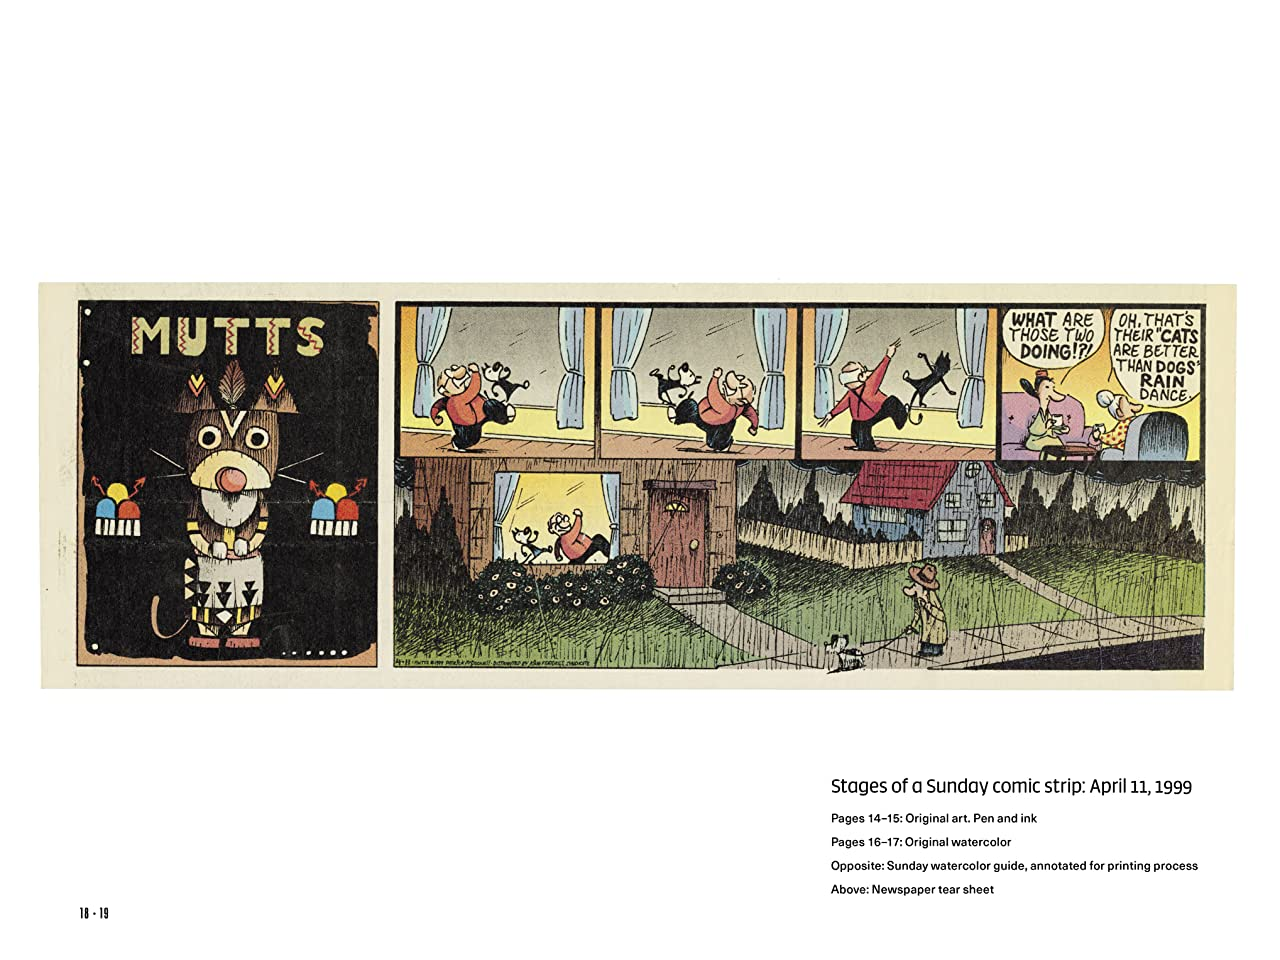 Art of Nothing: 25 Years of Mutts and the Art of Patrick McDonnell